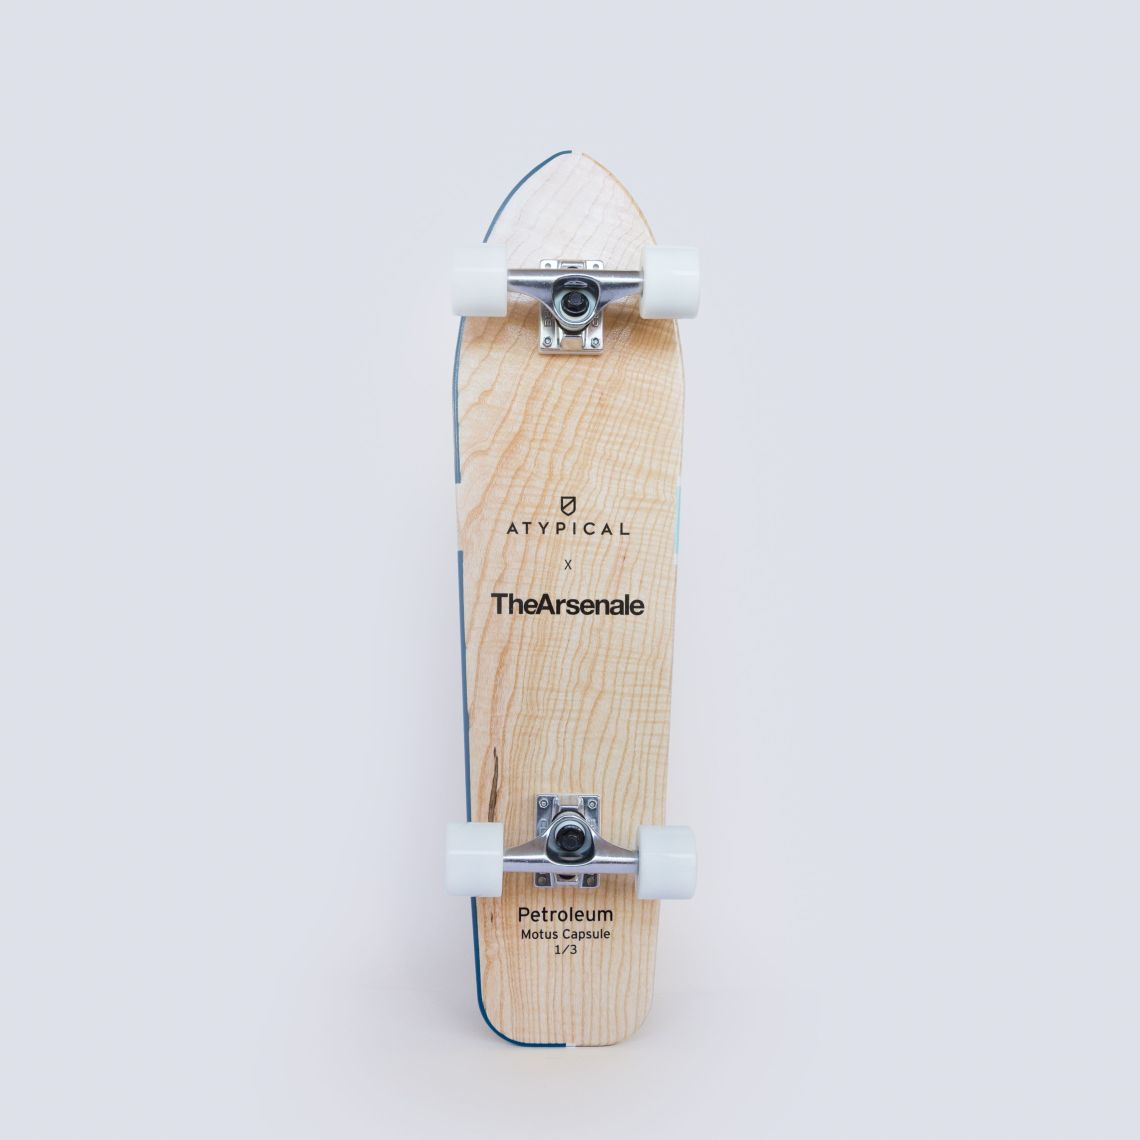 Motus Capsule Collection Skateboards By Atypical 10